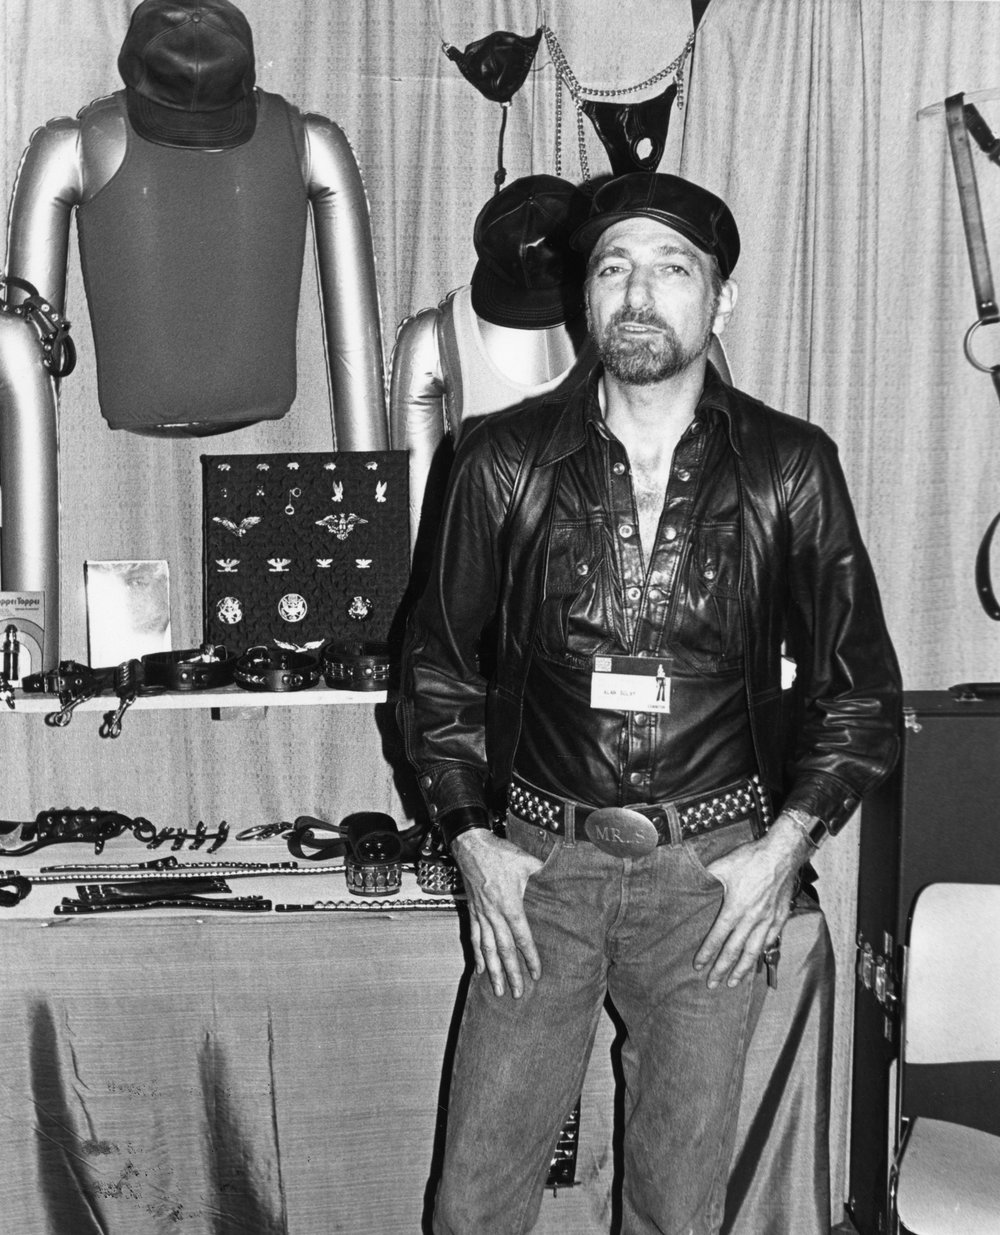 Alan Selby at the Mr. S Leather store on 7th Street in San Francisco (circa 1980). Photograph by Alexander V. Areno, all rights reserved; courtesy of Gayle Rubin.